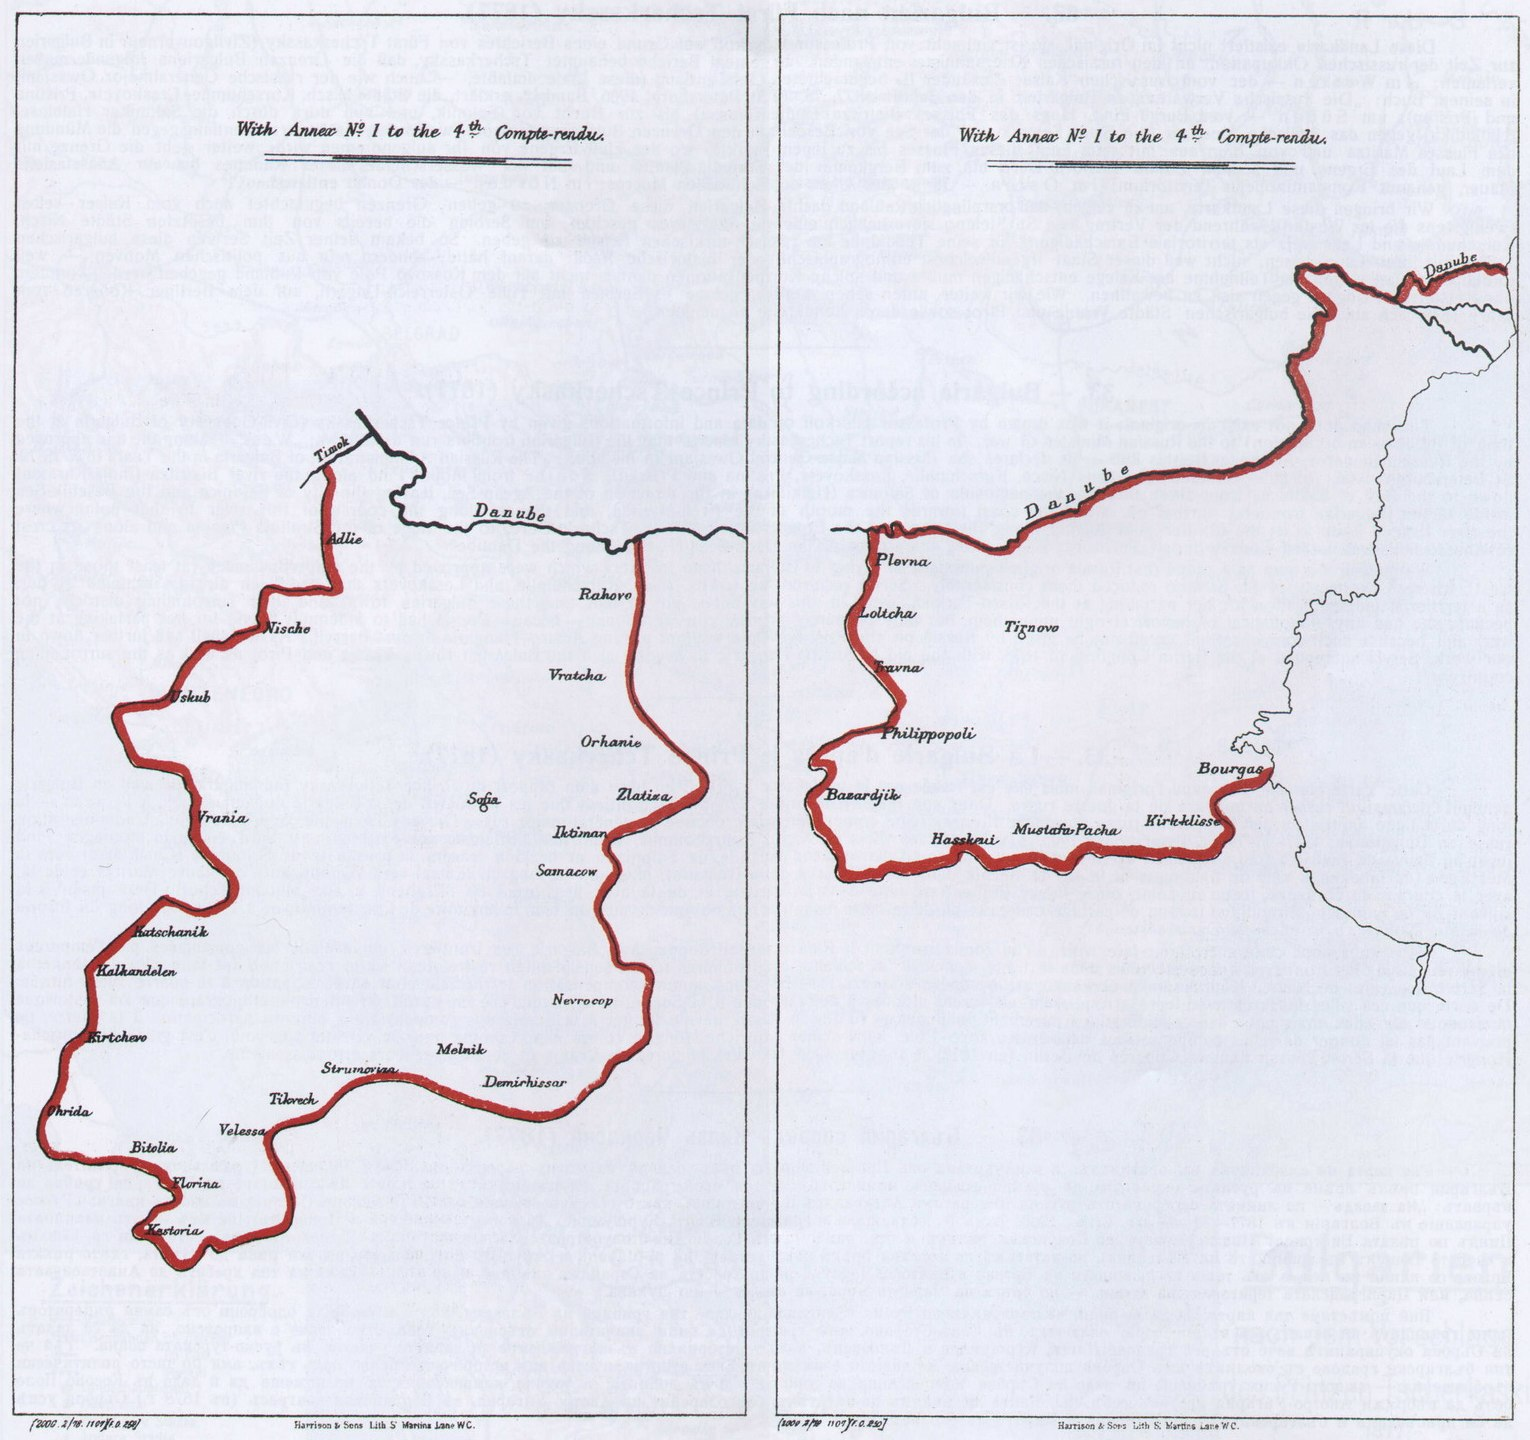 dr_map_32